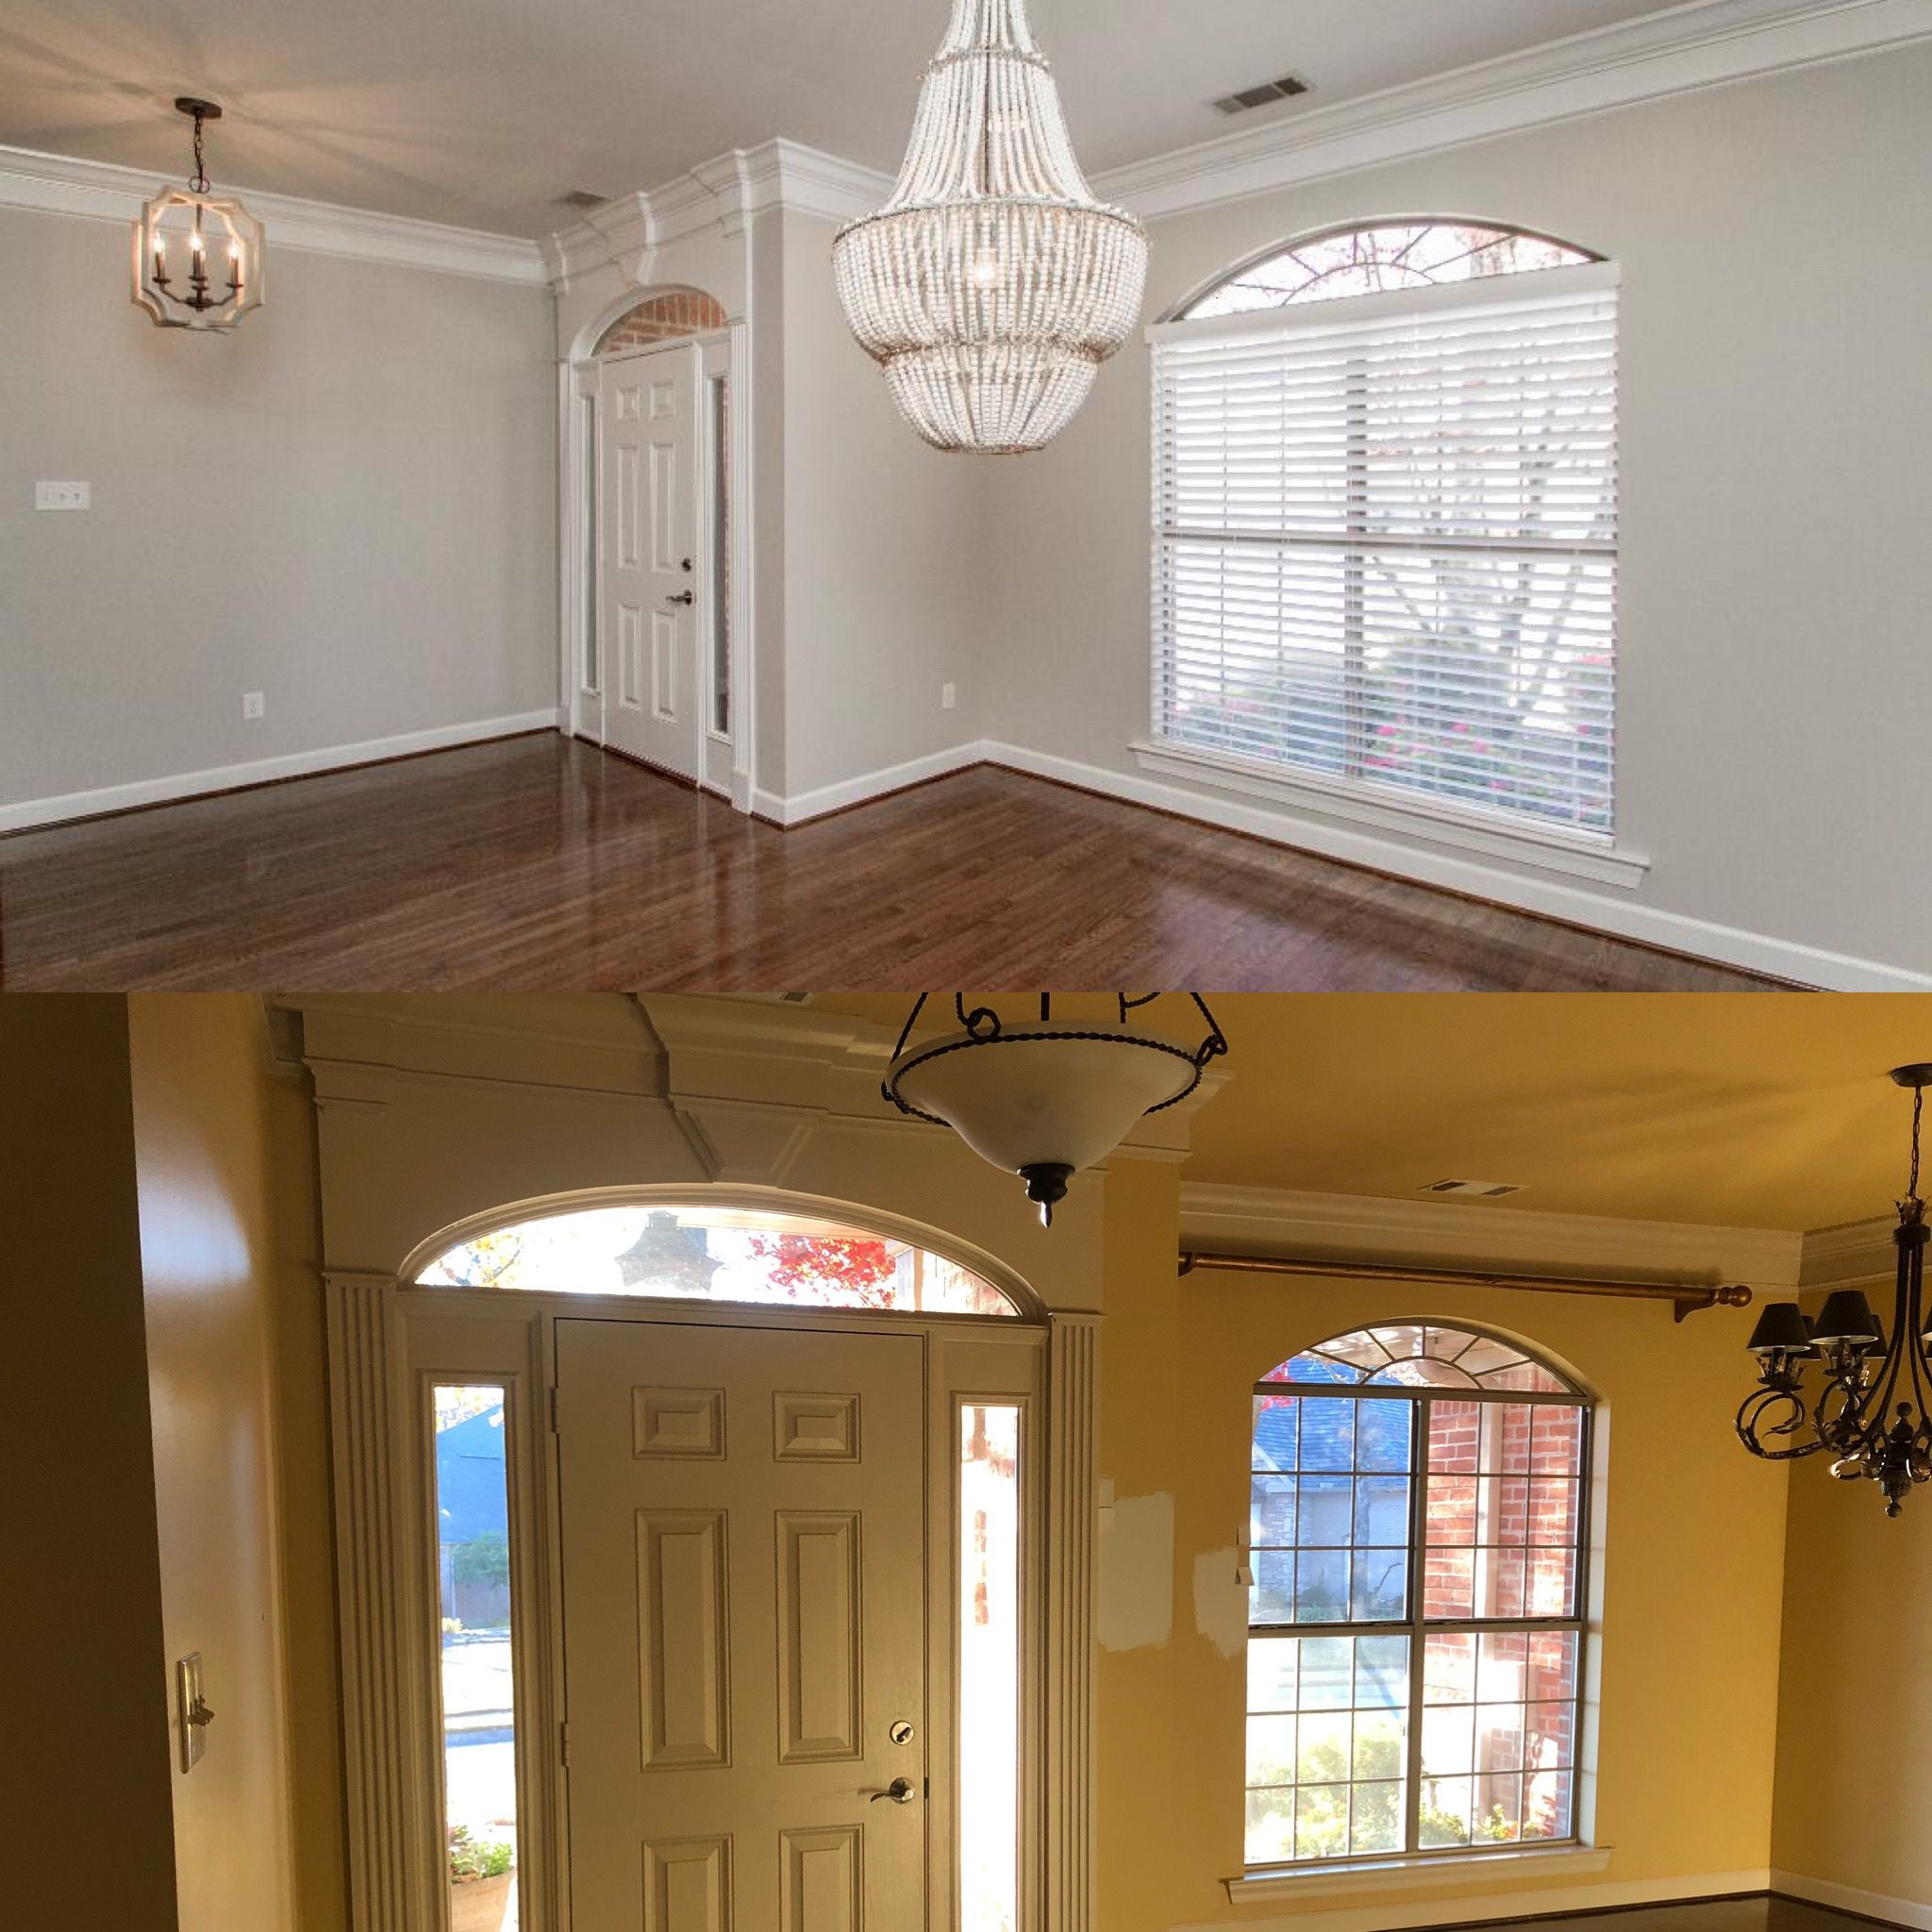 Opening Up The Entry Of The Home In This Case Was Mostly Cosmetic New Colors Lighting Fixtures And Additional Light Home Renovation Trendy Home Bars For Home